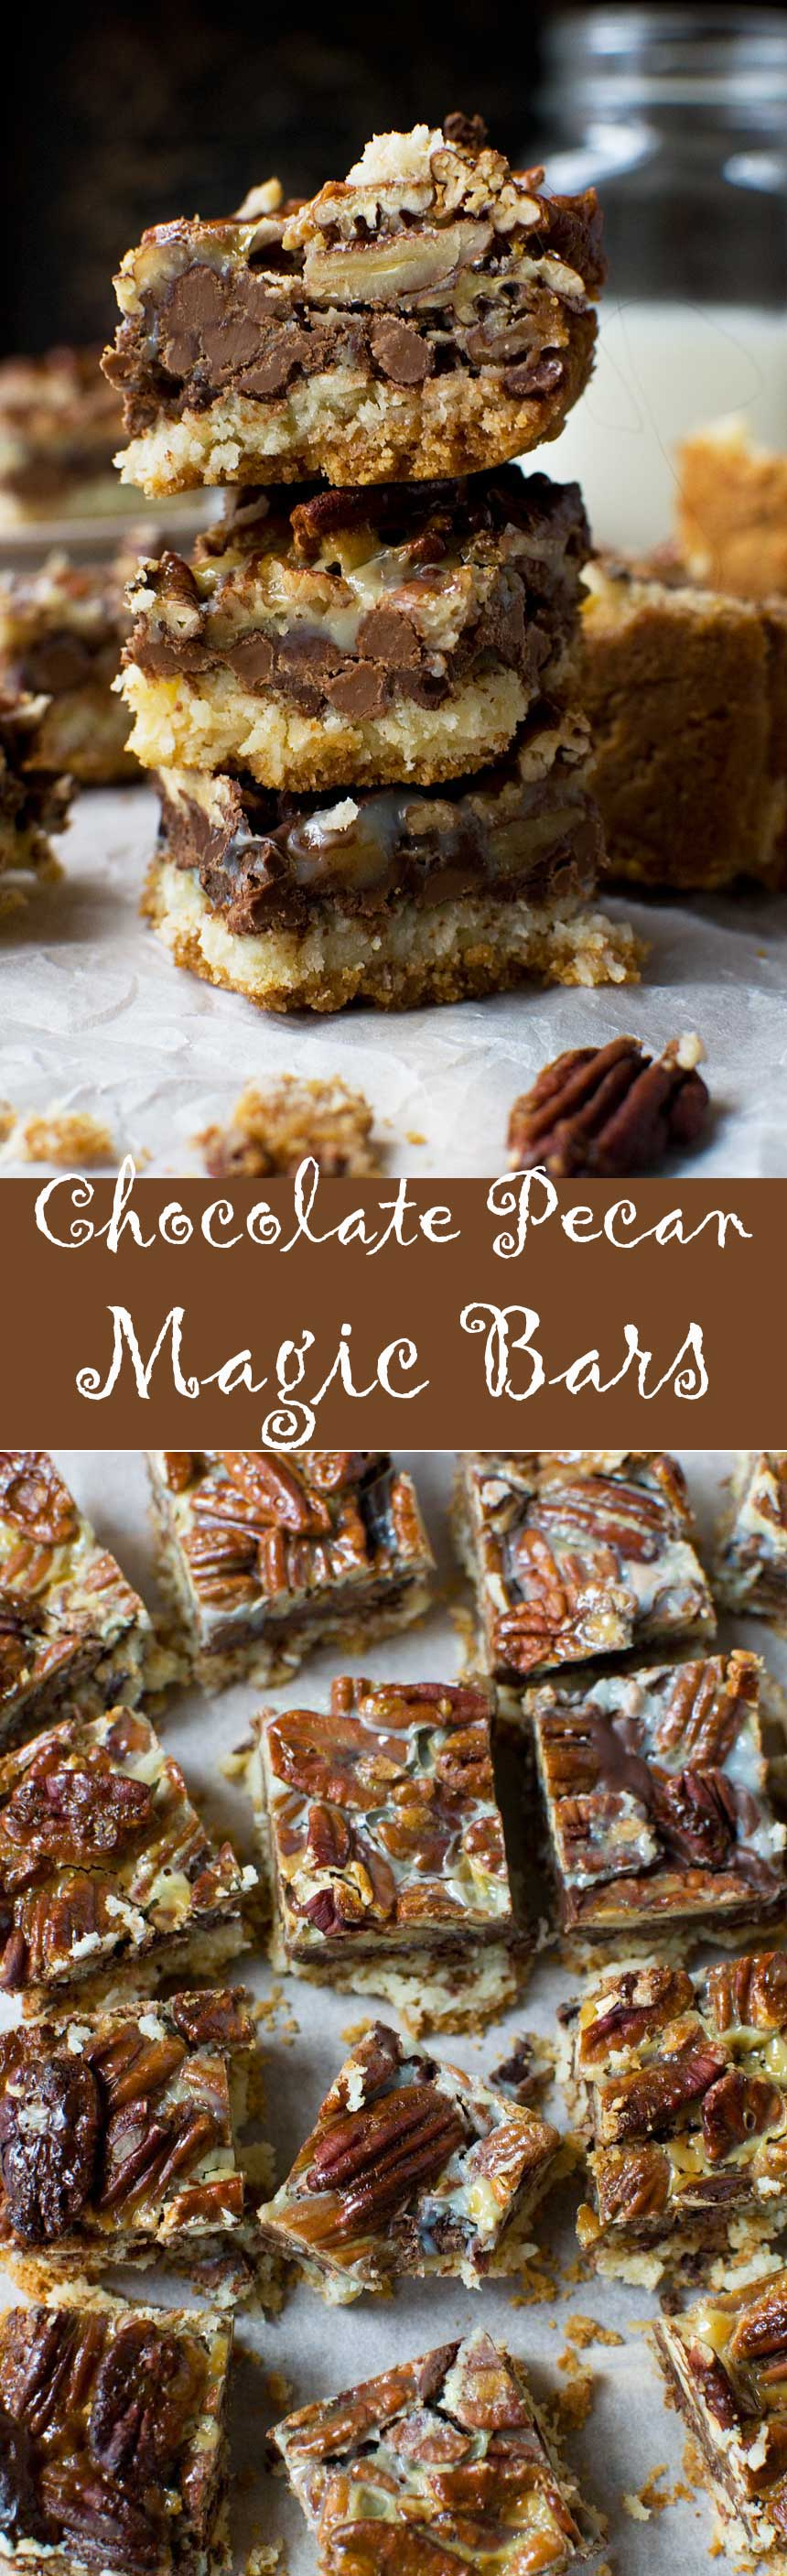 No bowl chocolate pecan bars (magic bars!)